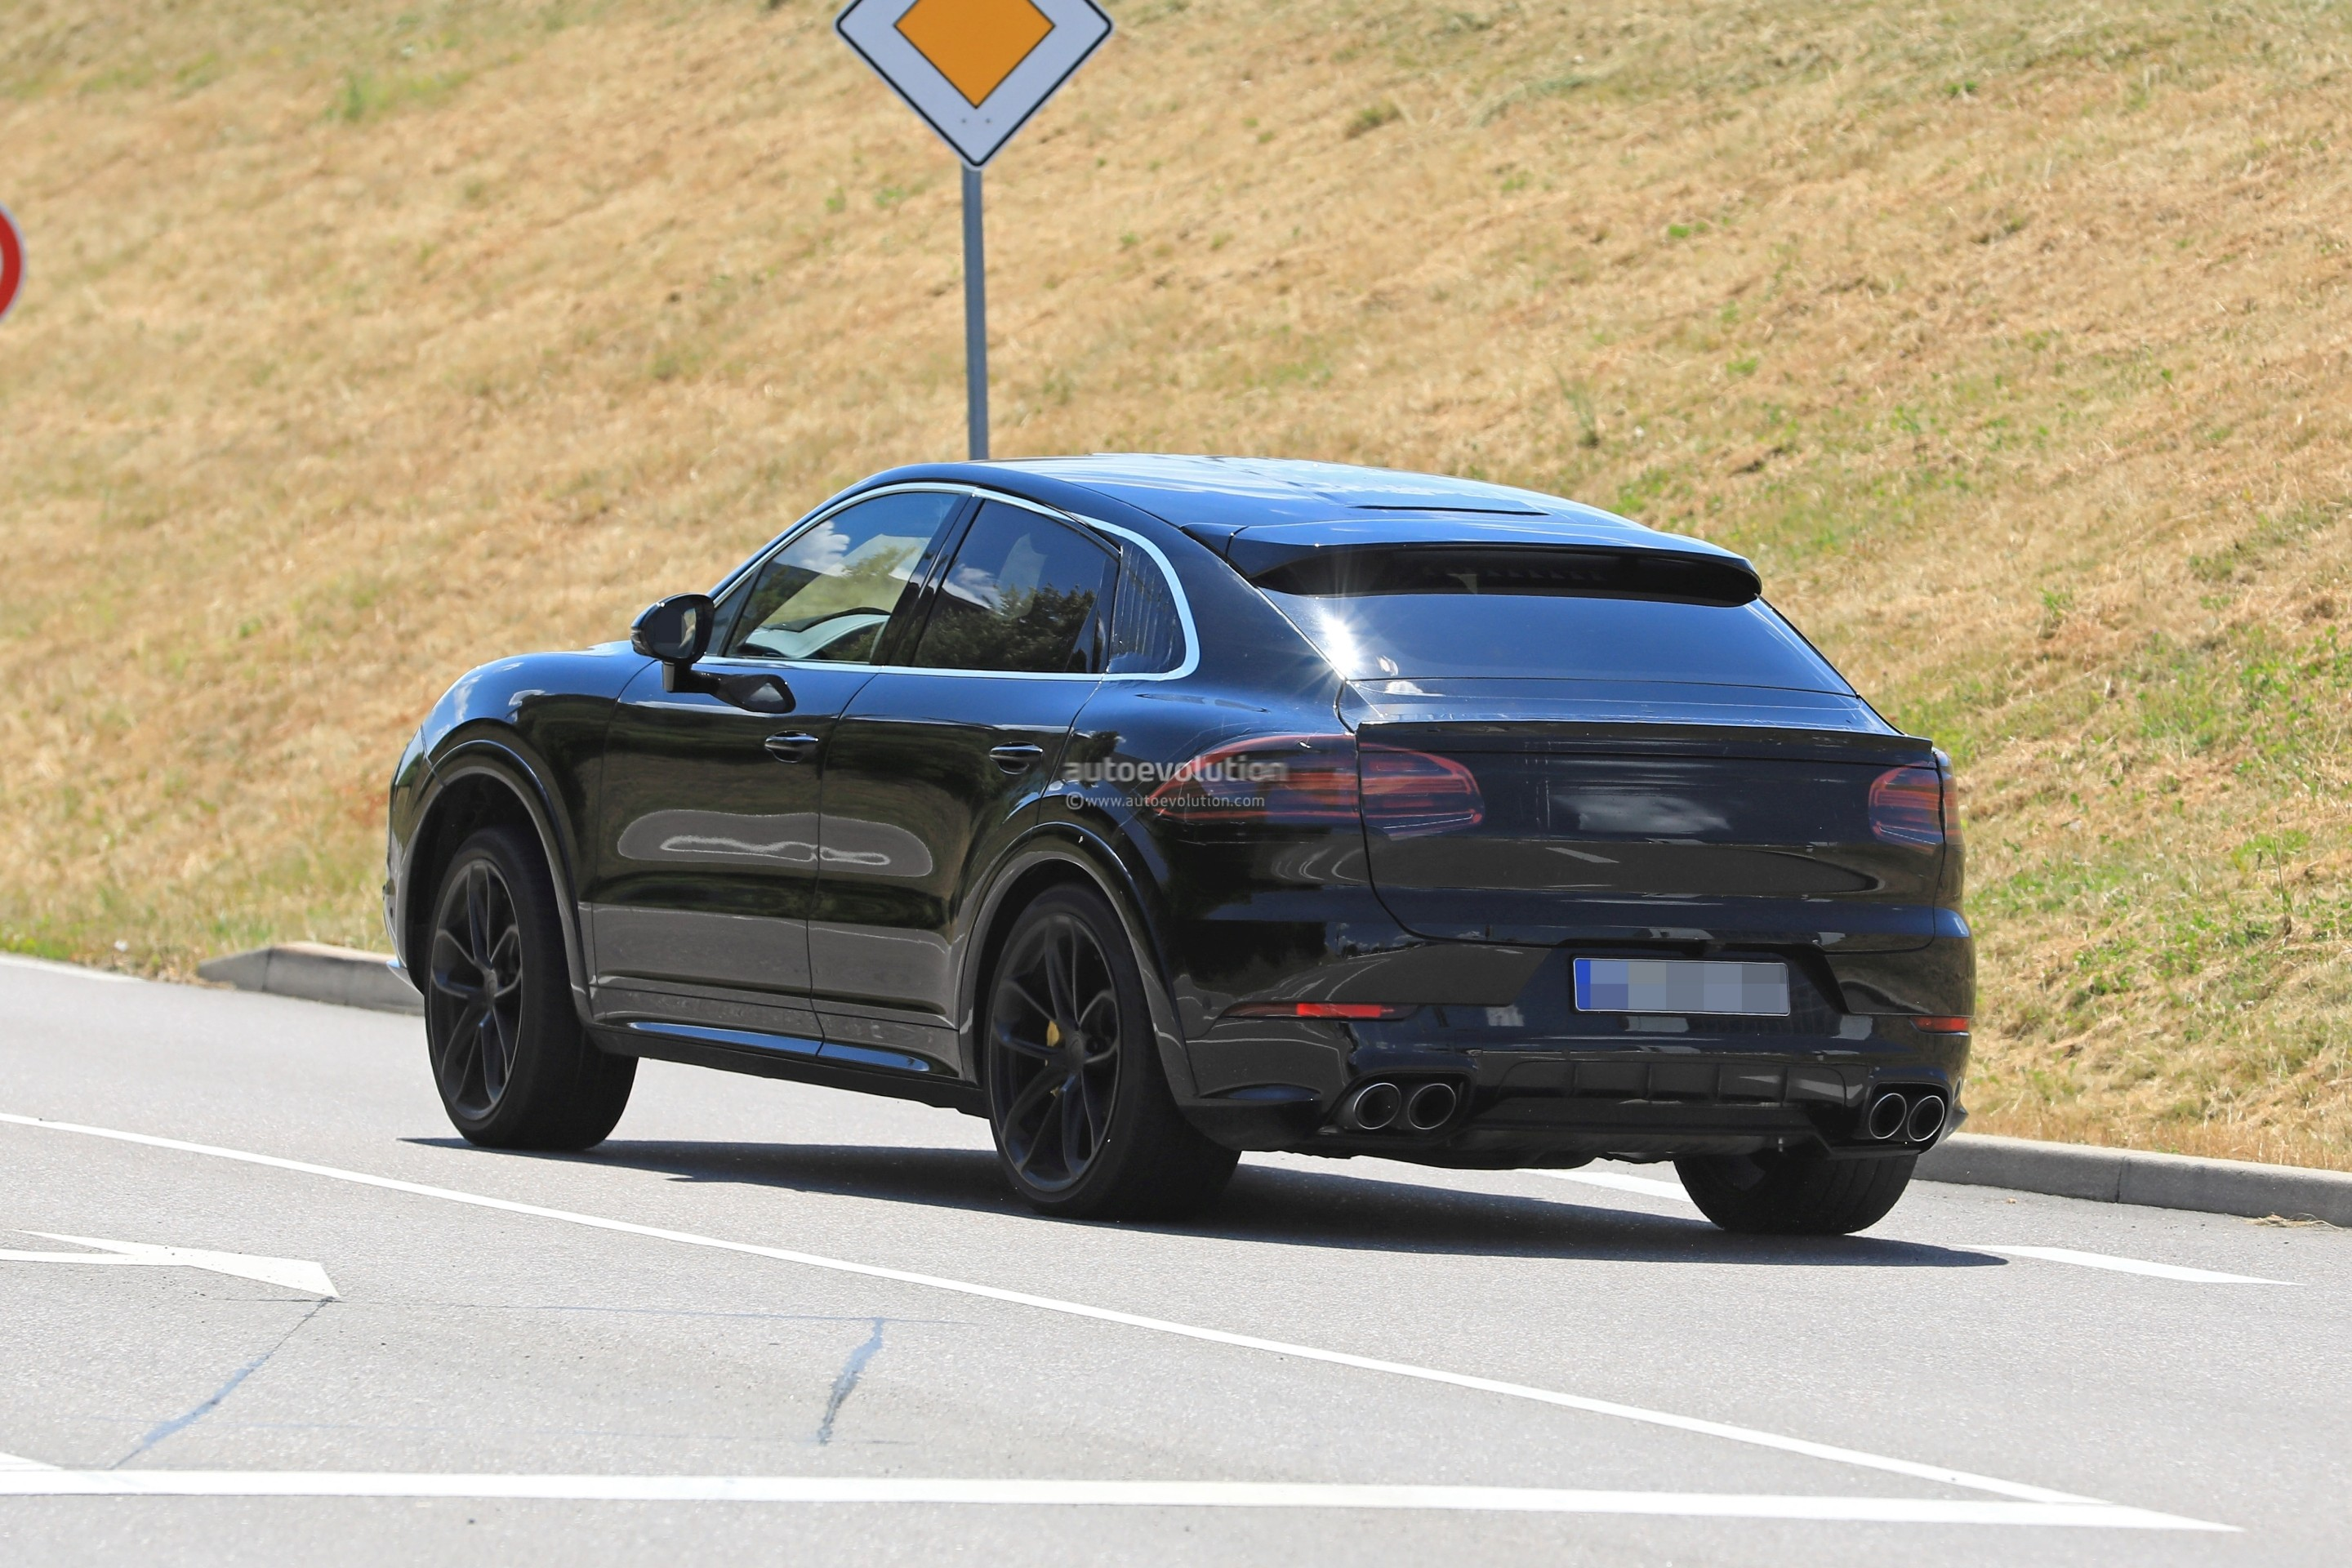 2020 Porsche Cayenne Coupe Turbo Prototype Reveals Svelte Roofline Autoevolution